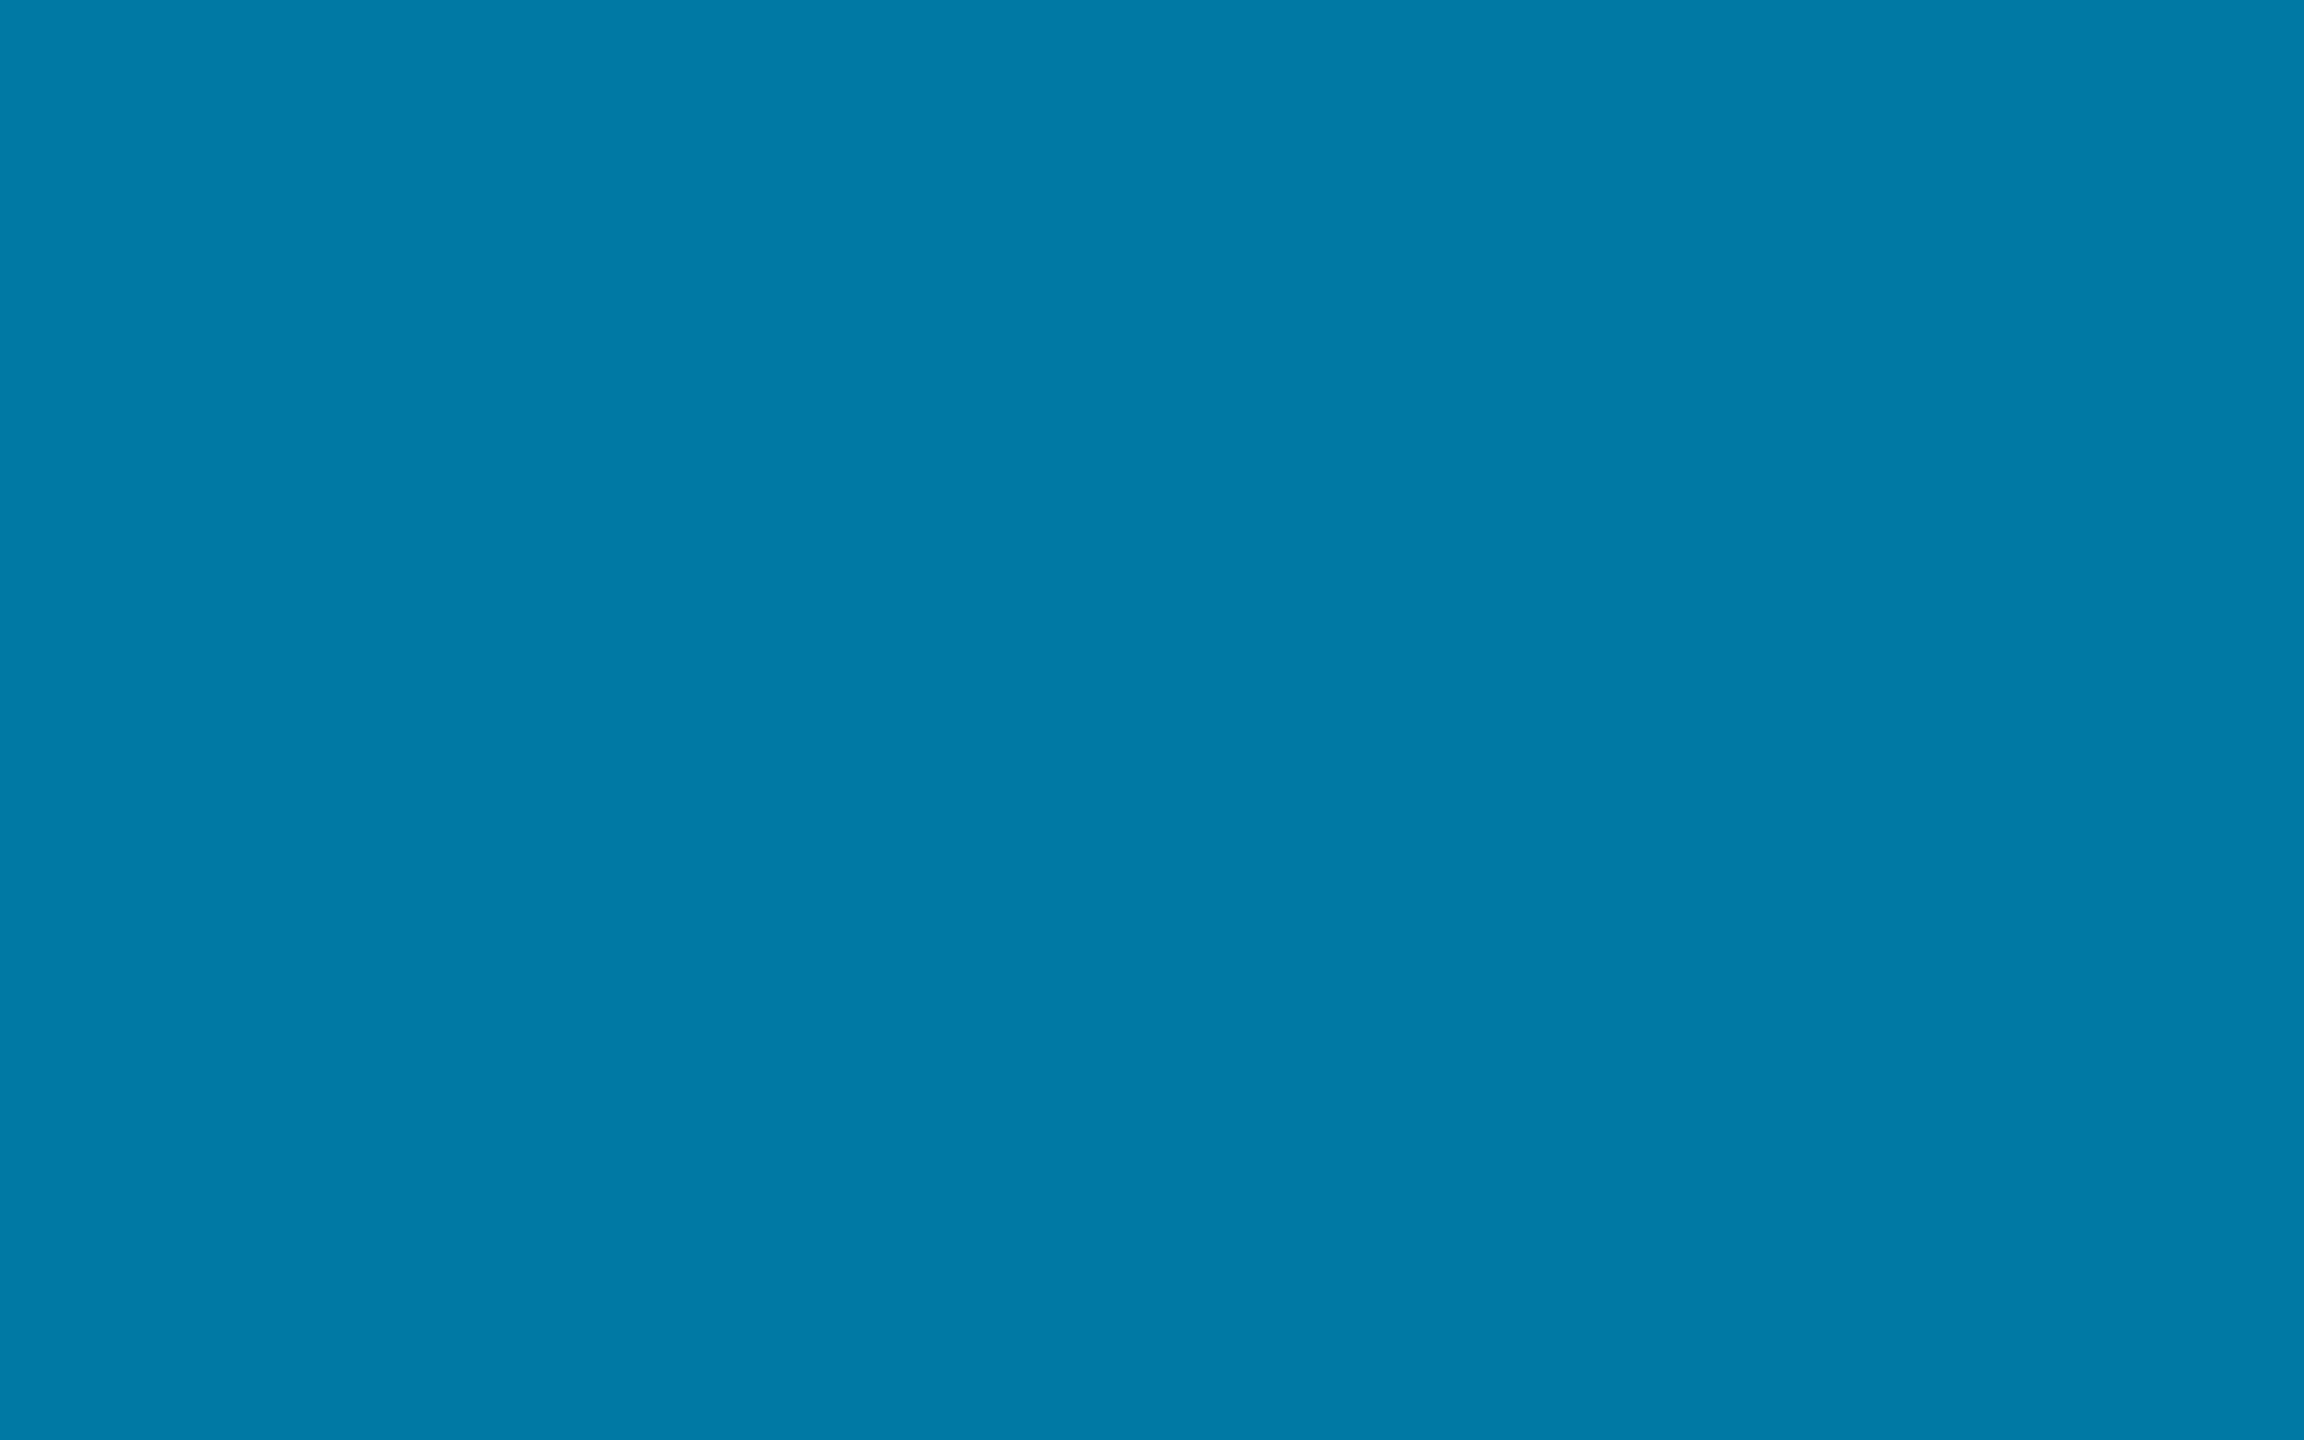 2304x1440 CG Blue Solid Color Background